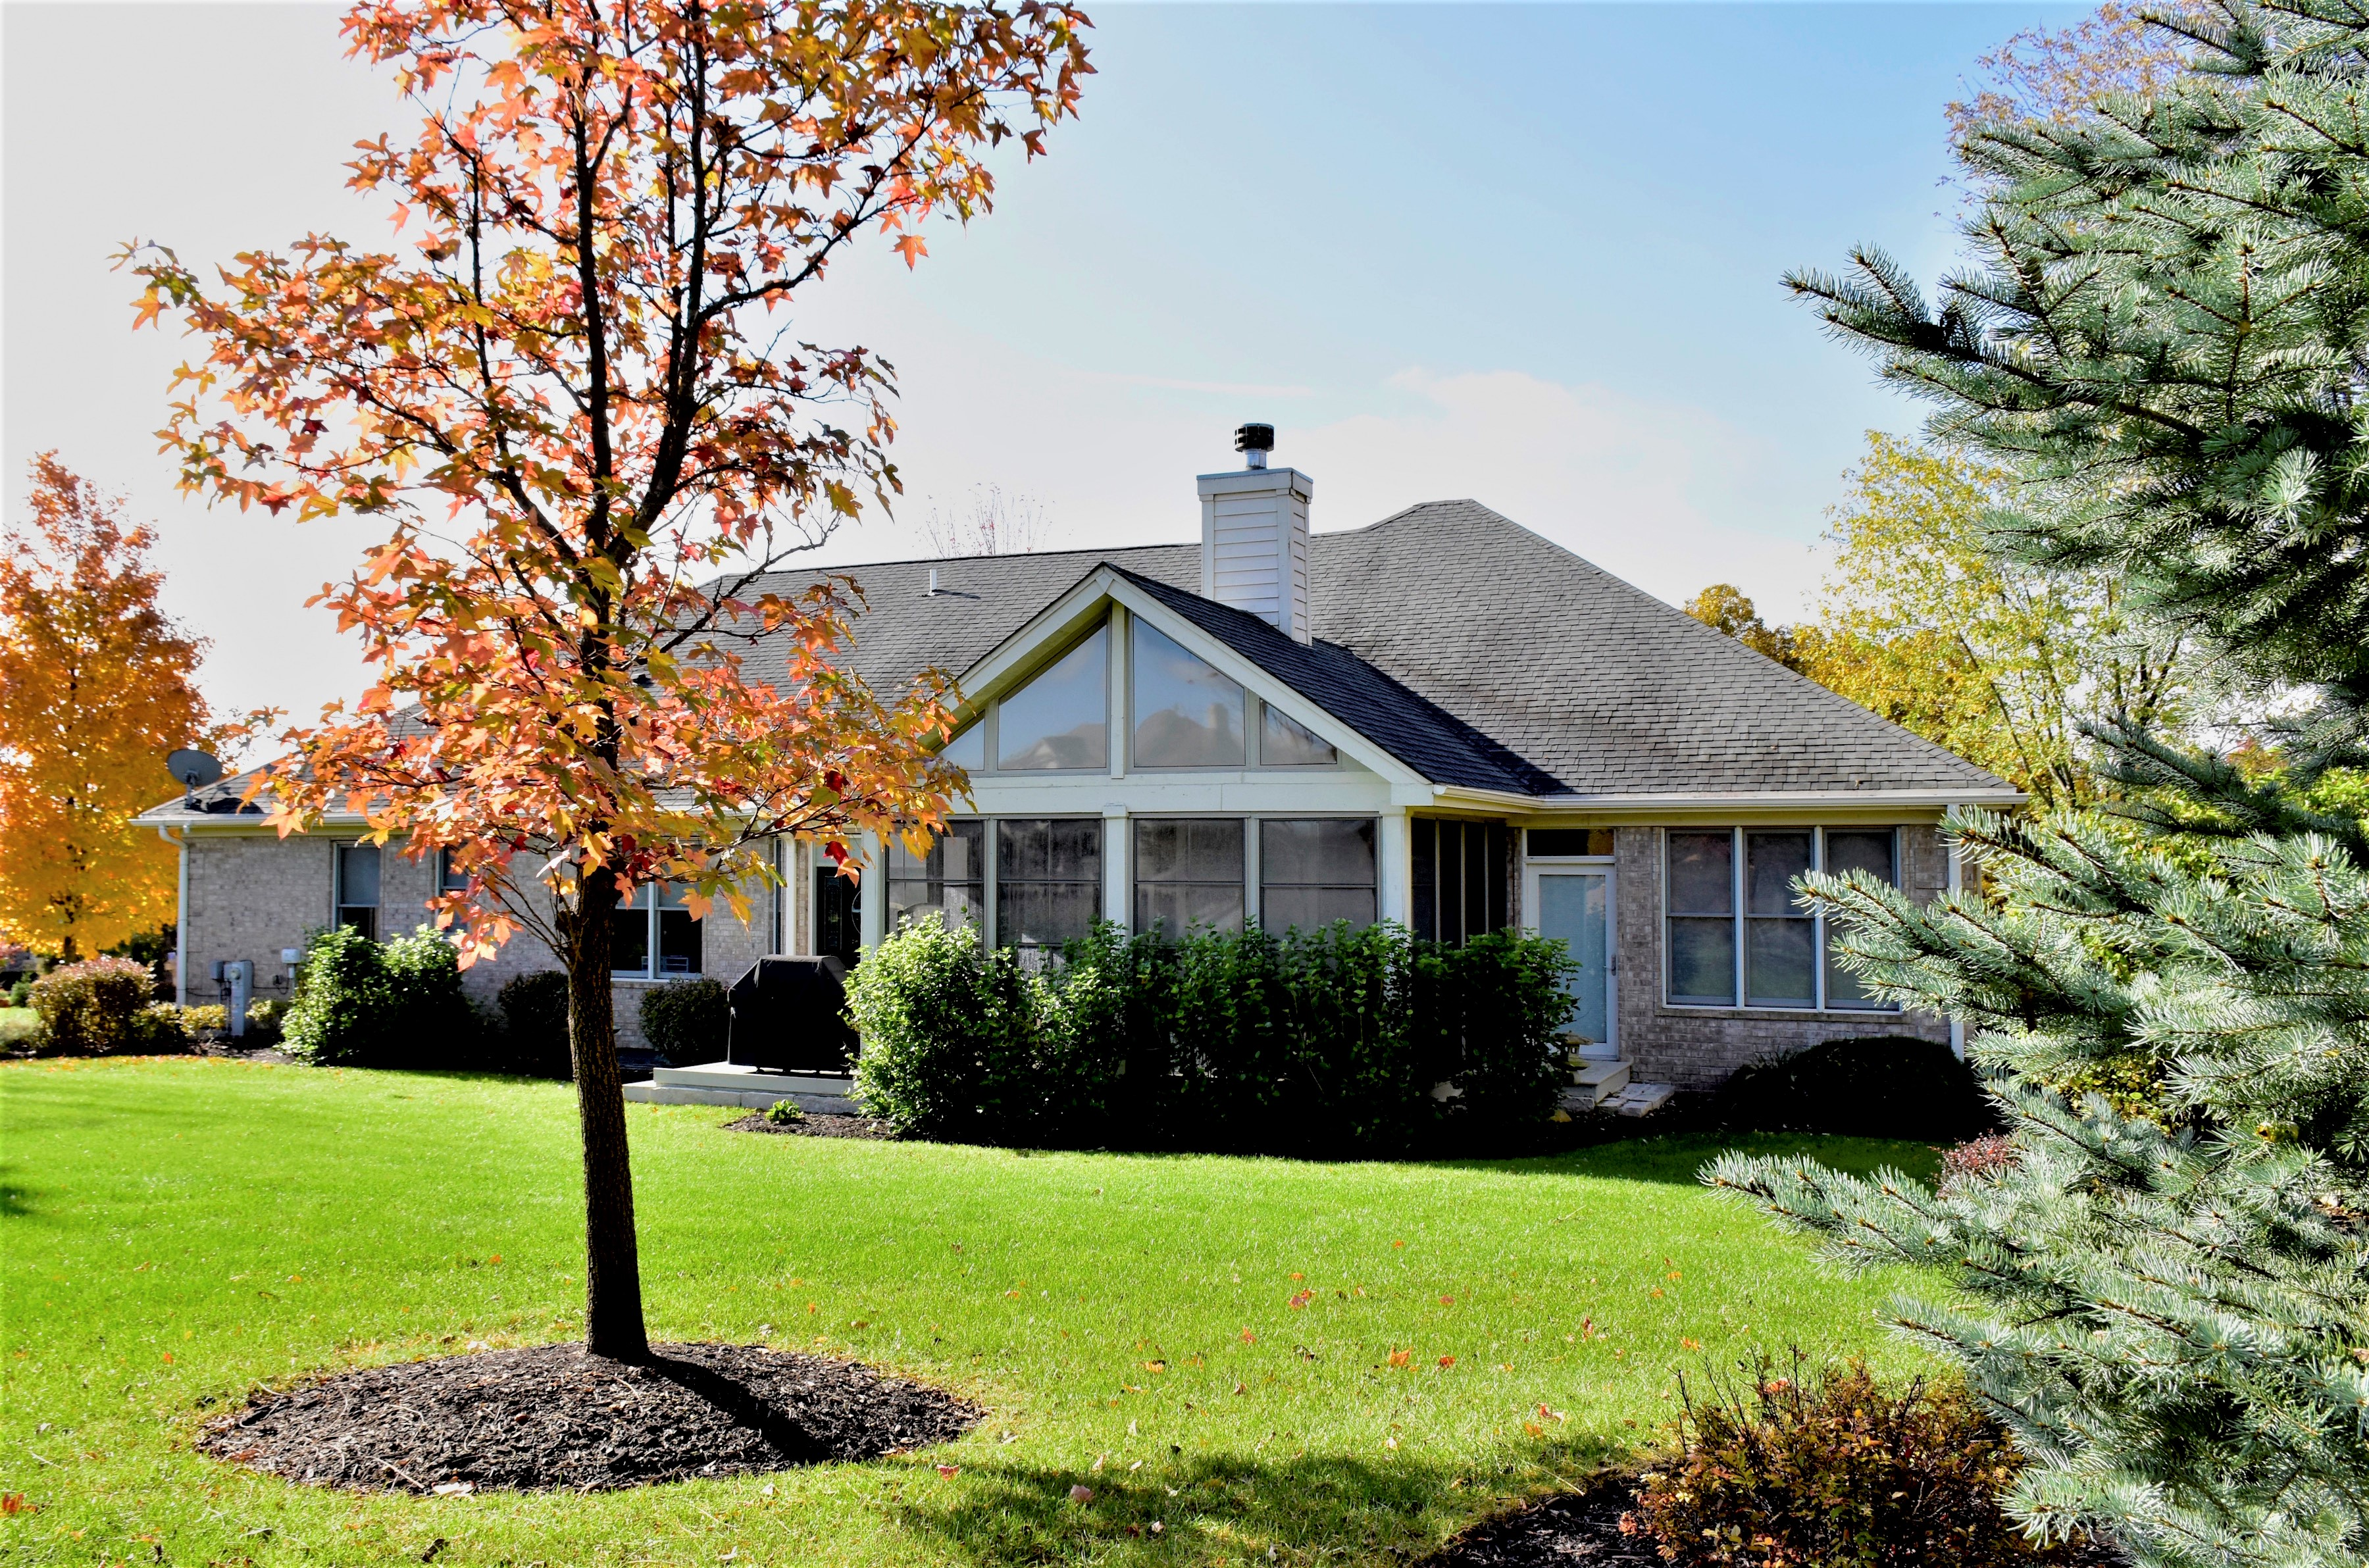 Just Listed! 4-5BR, 3.5BA Ranch in Geneva National! 1280 Masters Rd, Lake Geneva WI